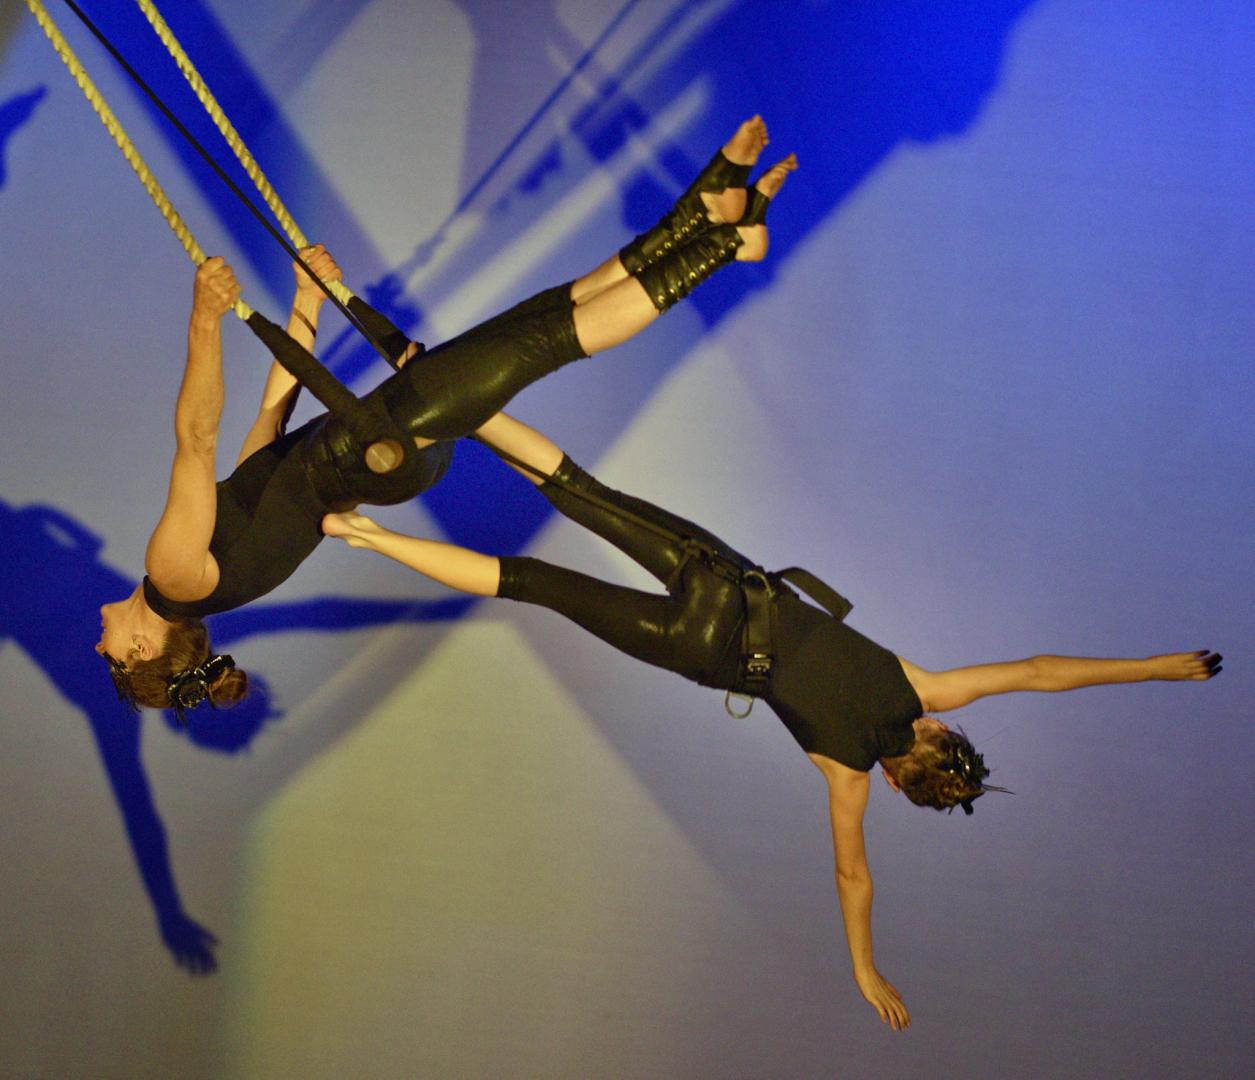 SEVEN – Flip N Fly Circus and Dance Collaboration Show